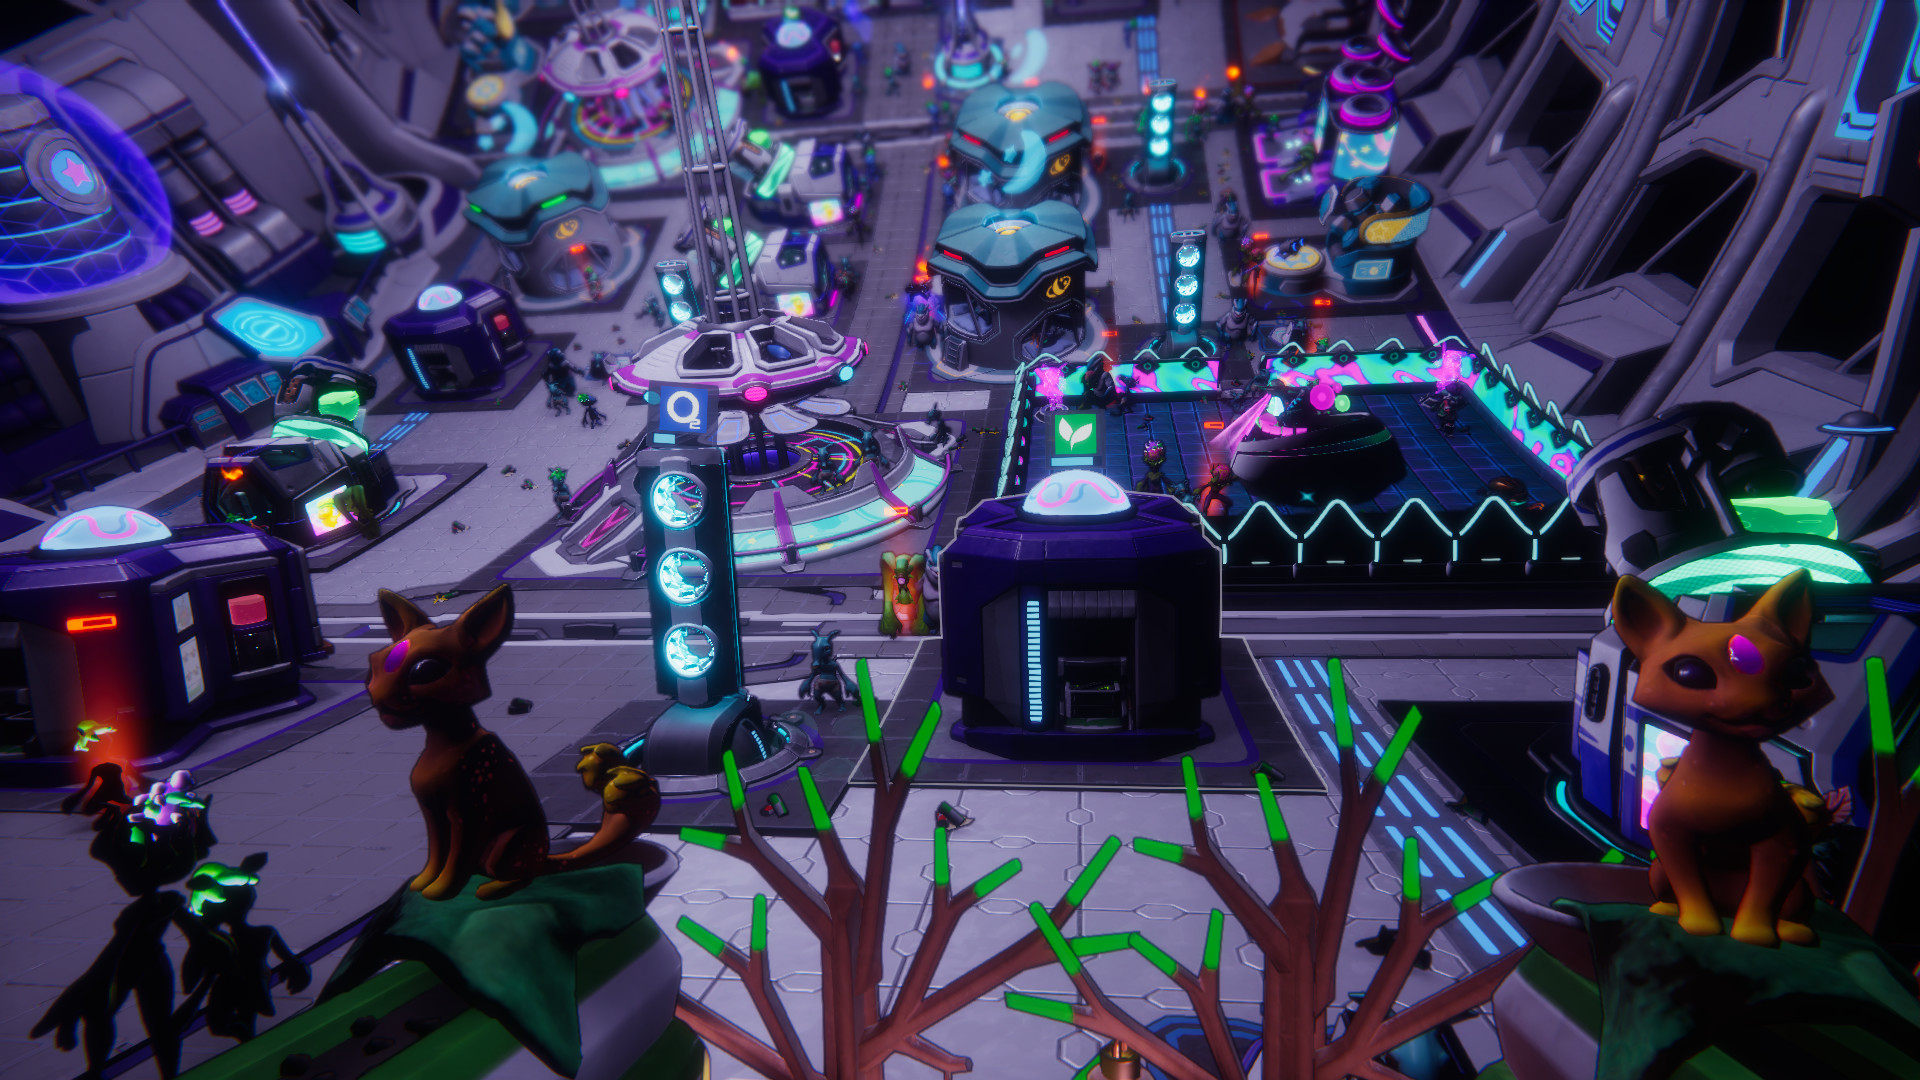 Run a space station in Spacebase Startopia, coming October 23 | PC Gamer